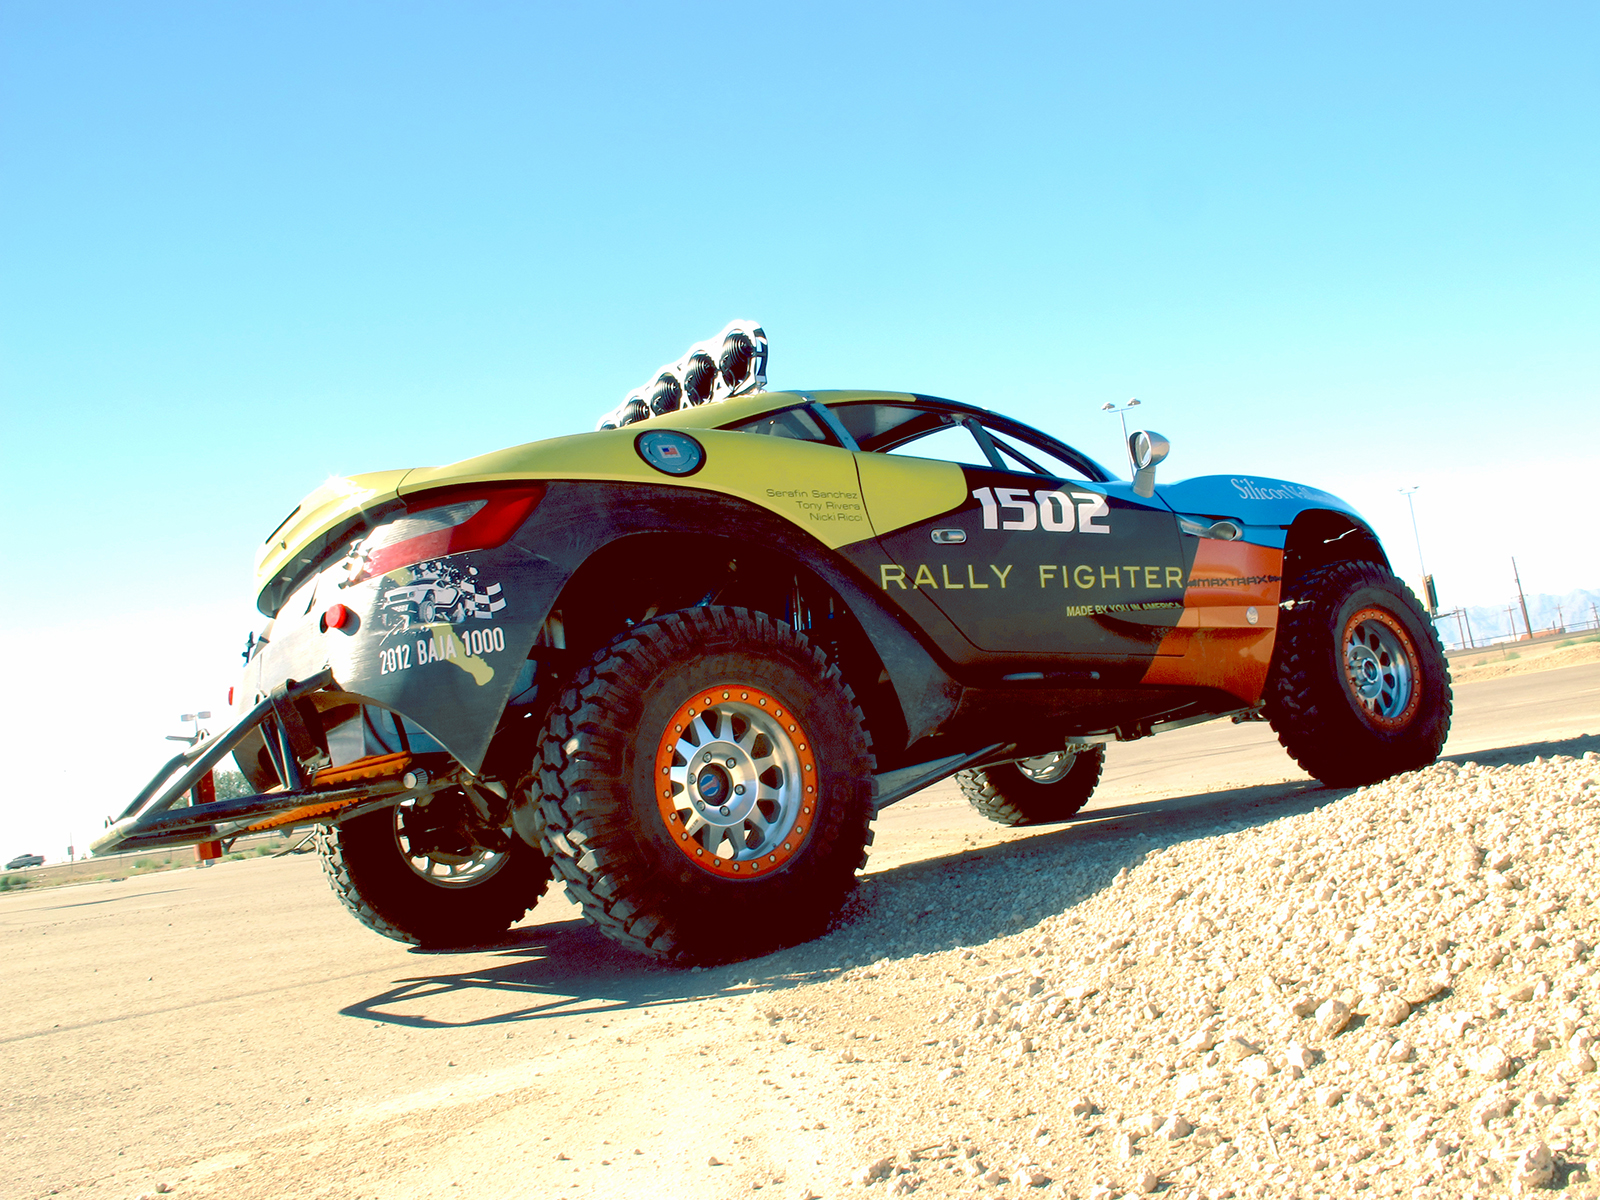 Local Motors Rally Fighter >> Rally Fighter Baja Car by Tammy Ginneo